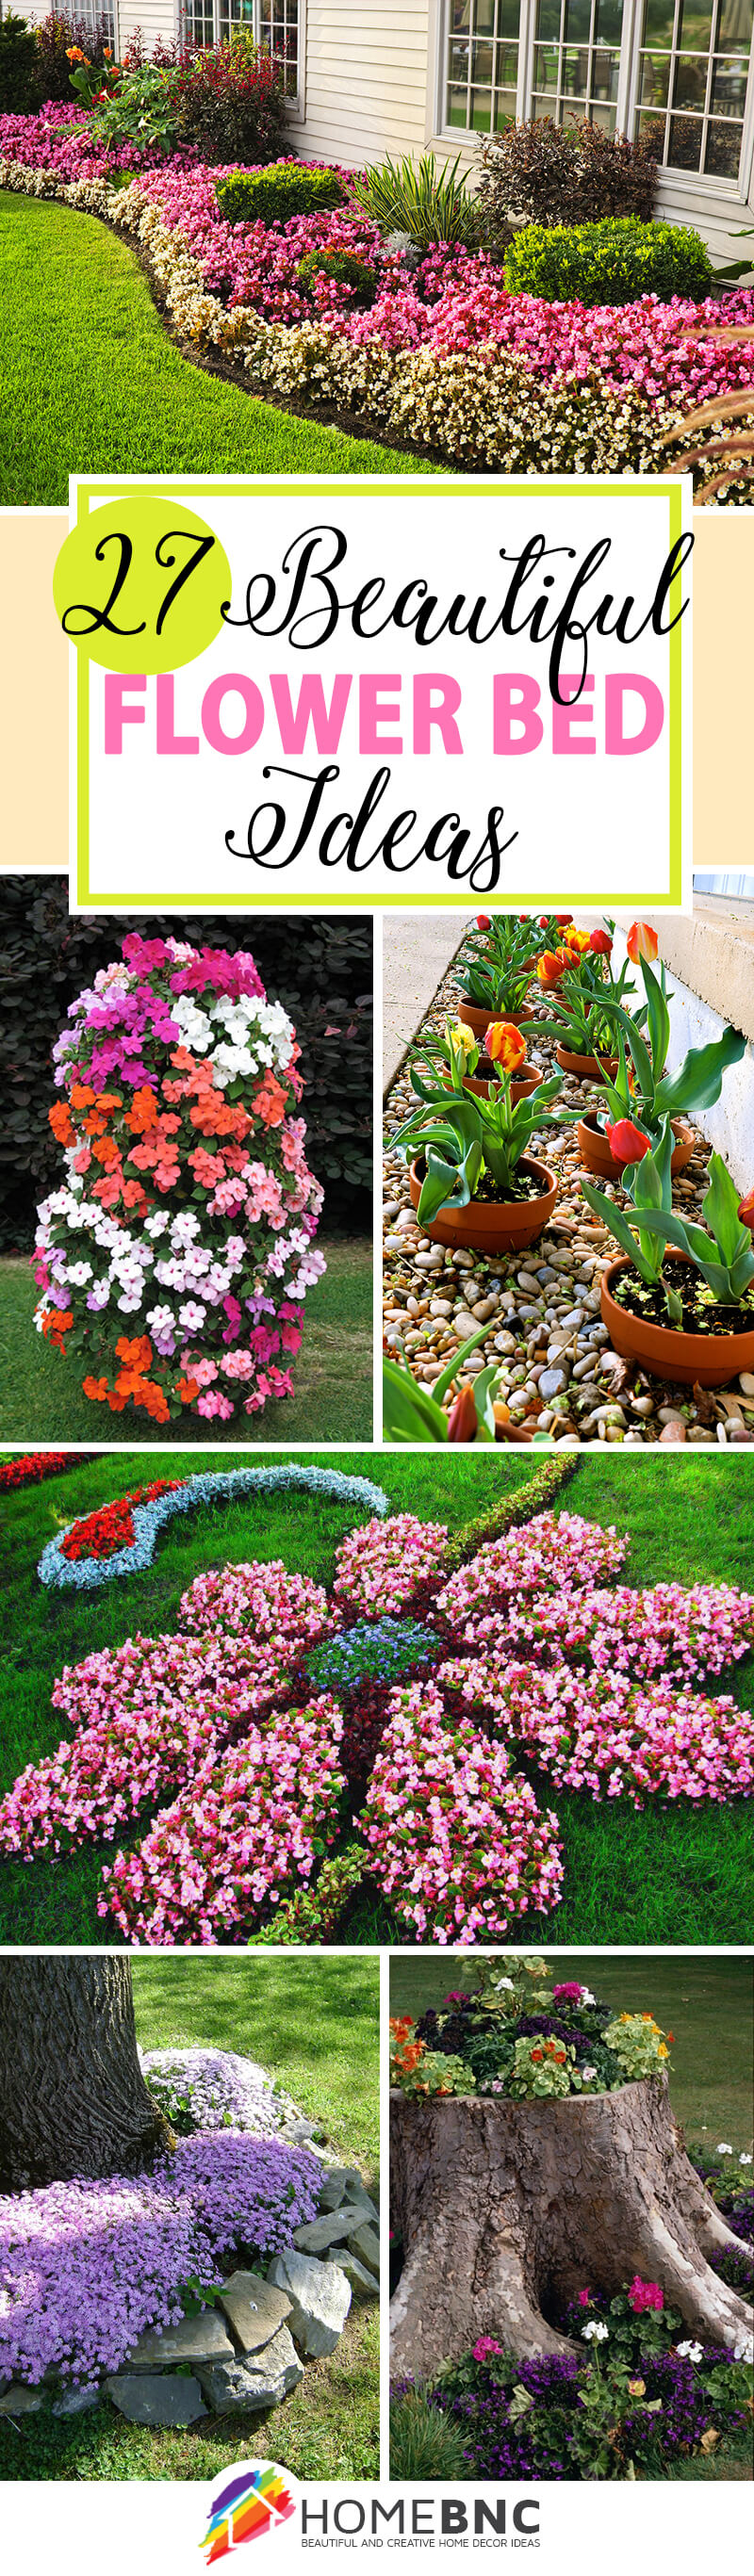 flower bed designs - Pictures Of Flower Bed Ideas